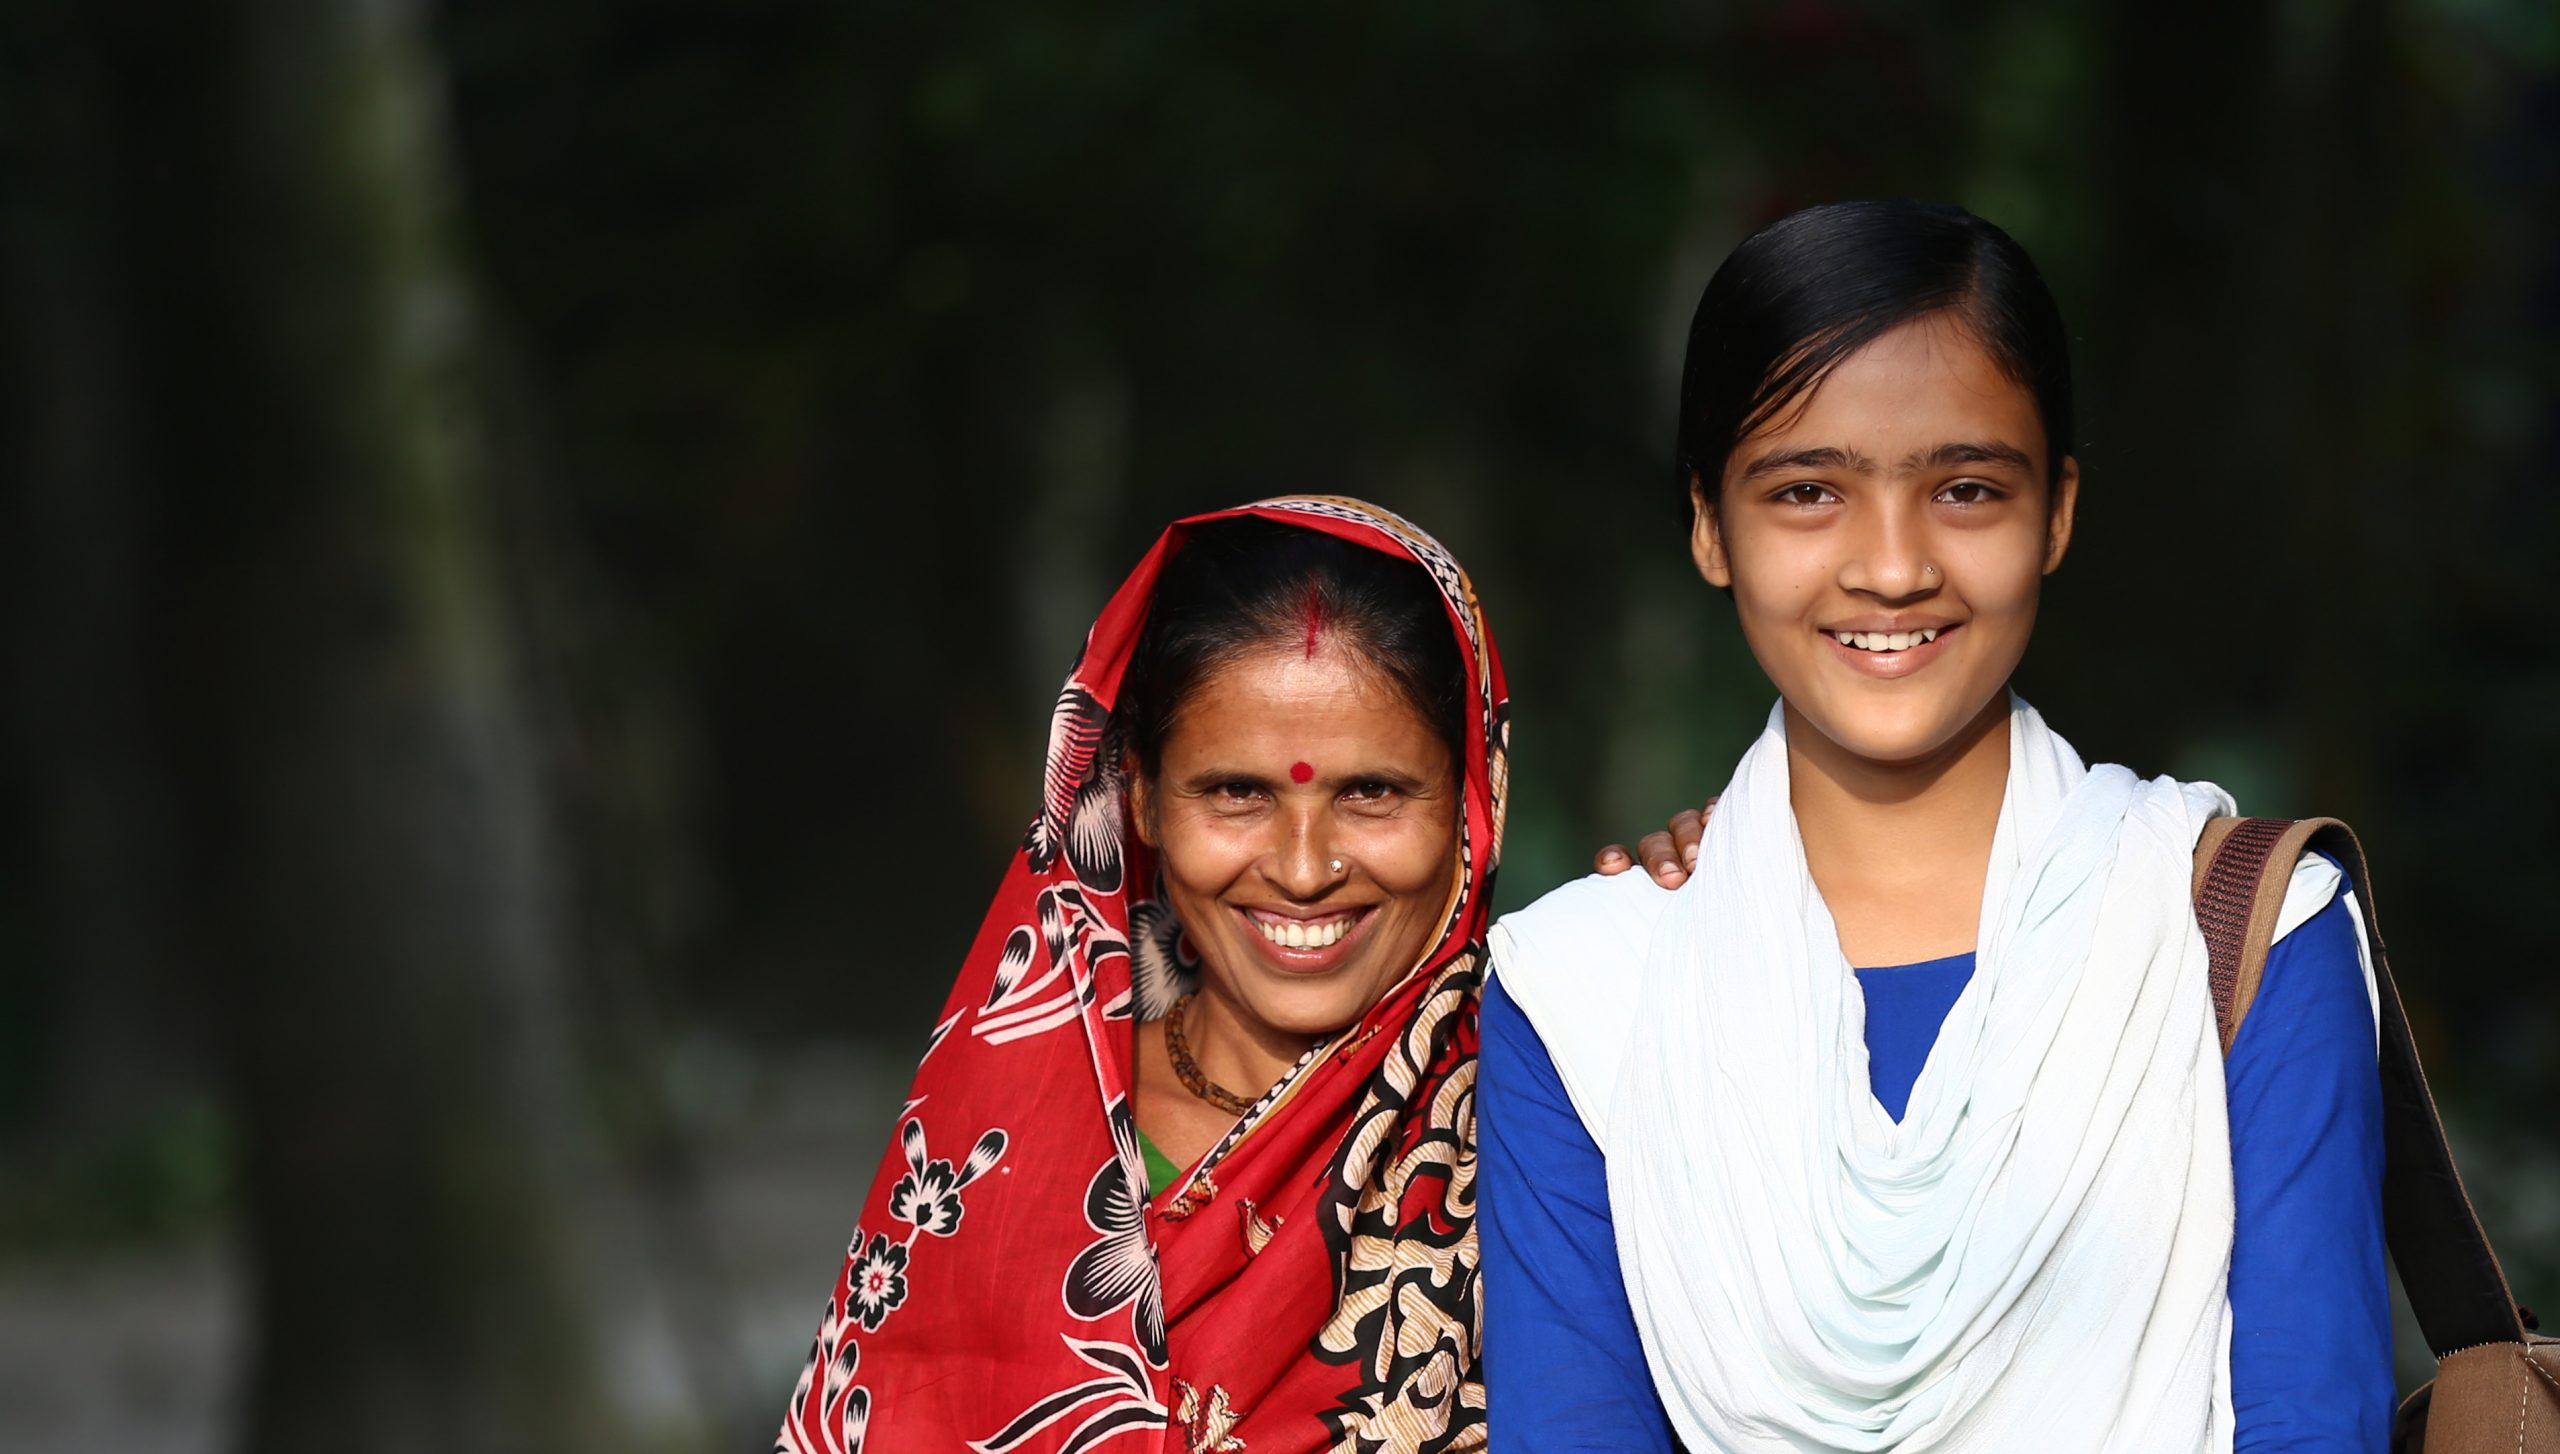 A mother and daughter in Bangladesh